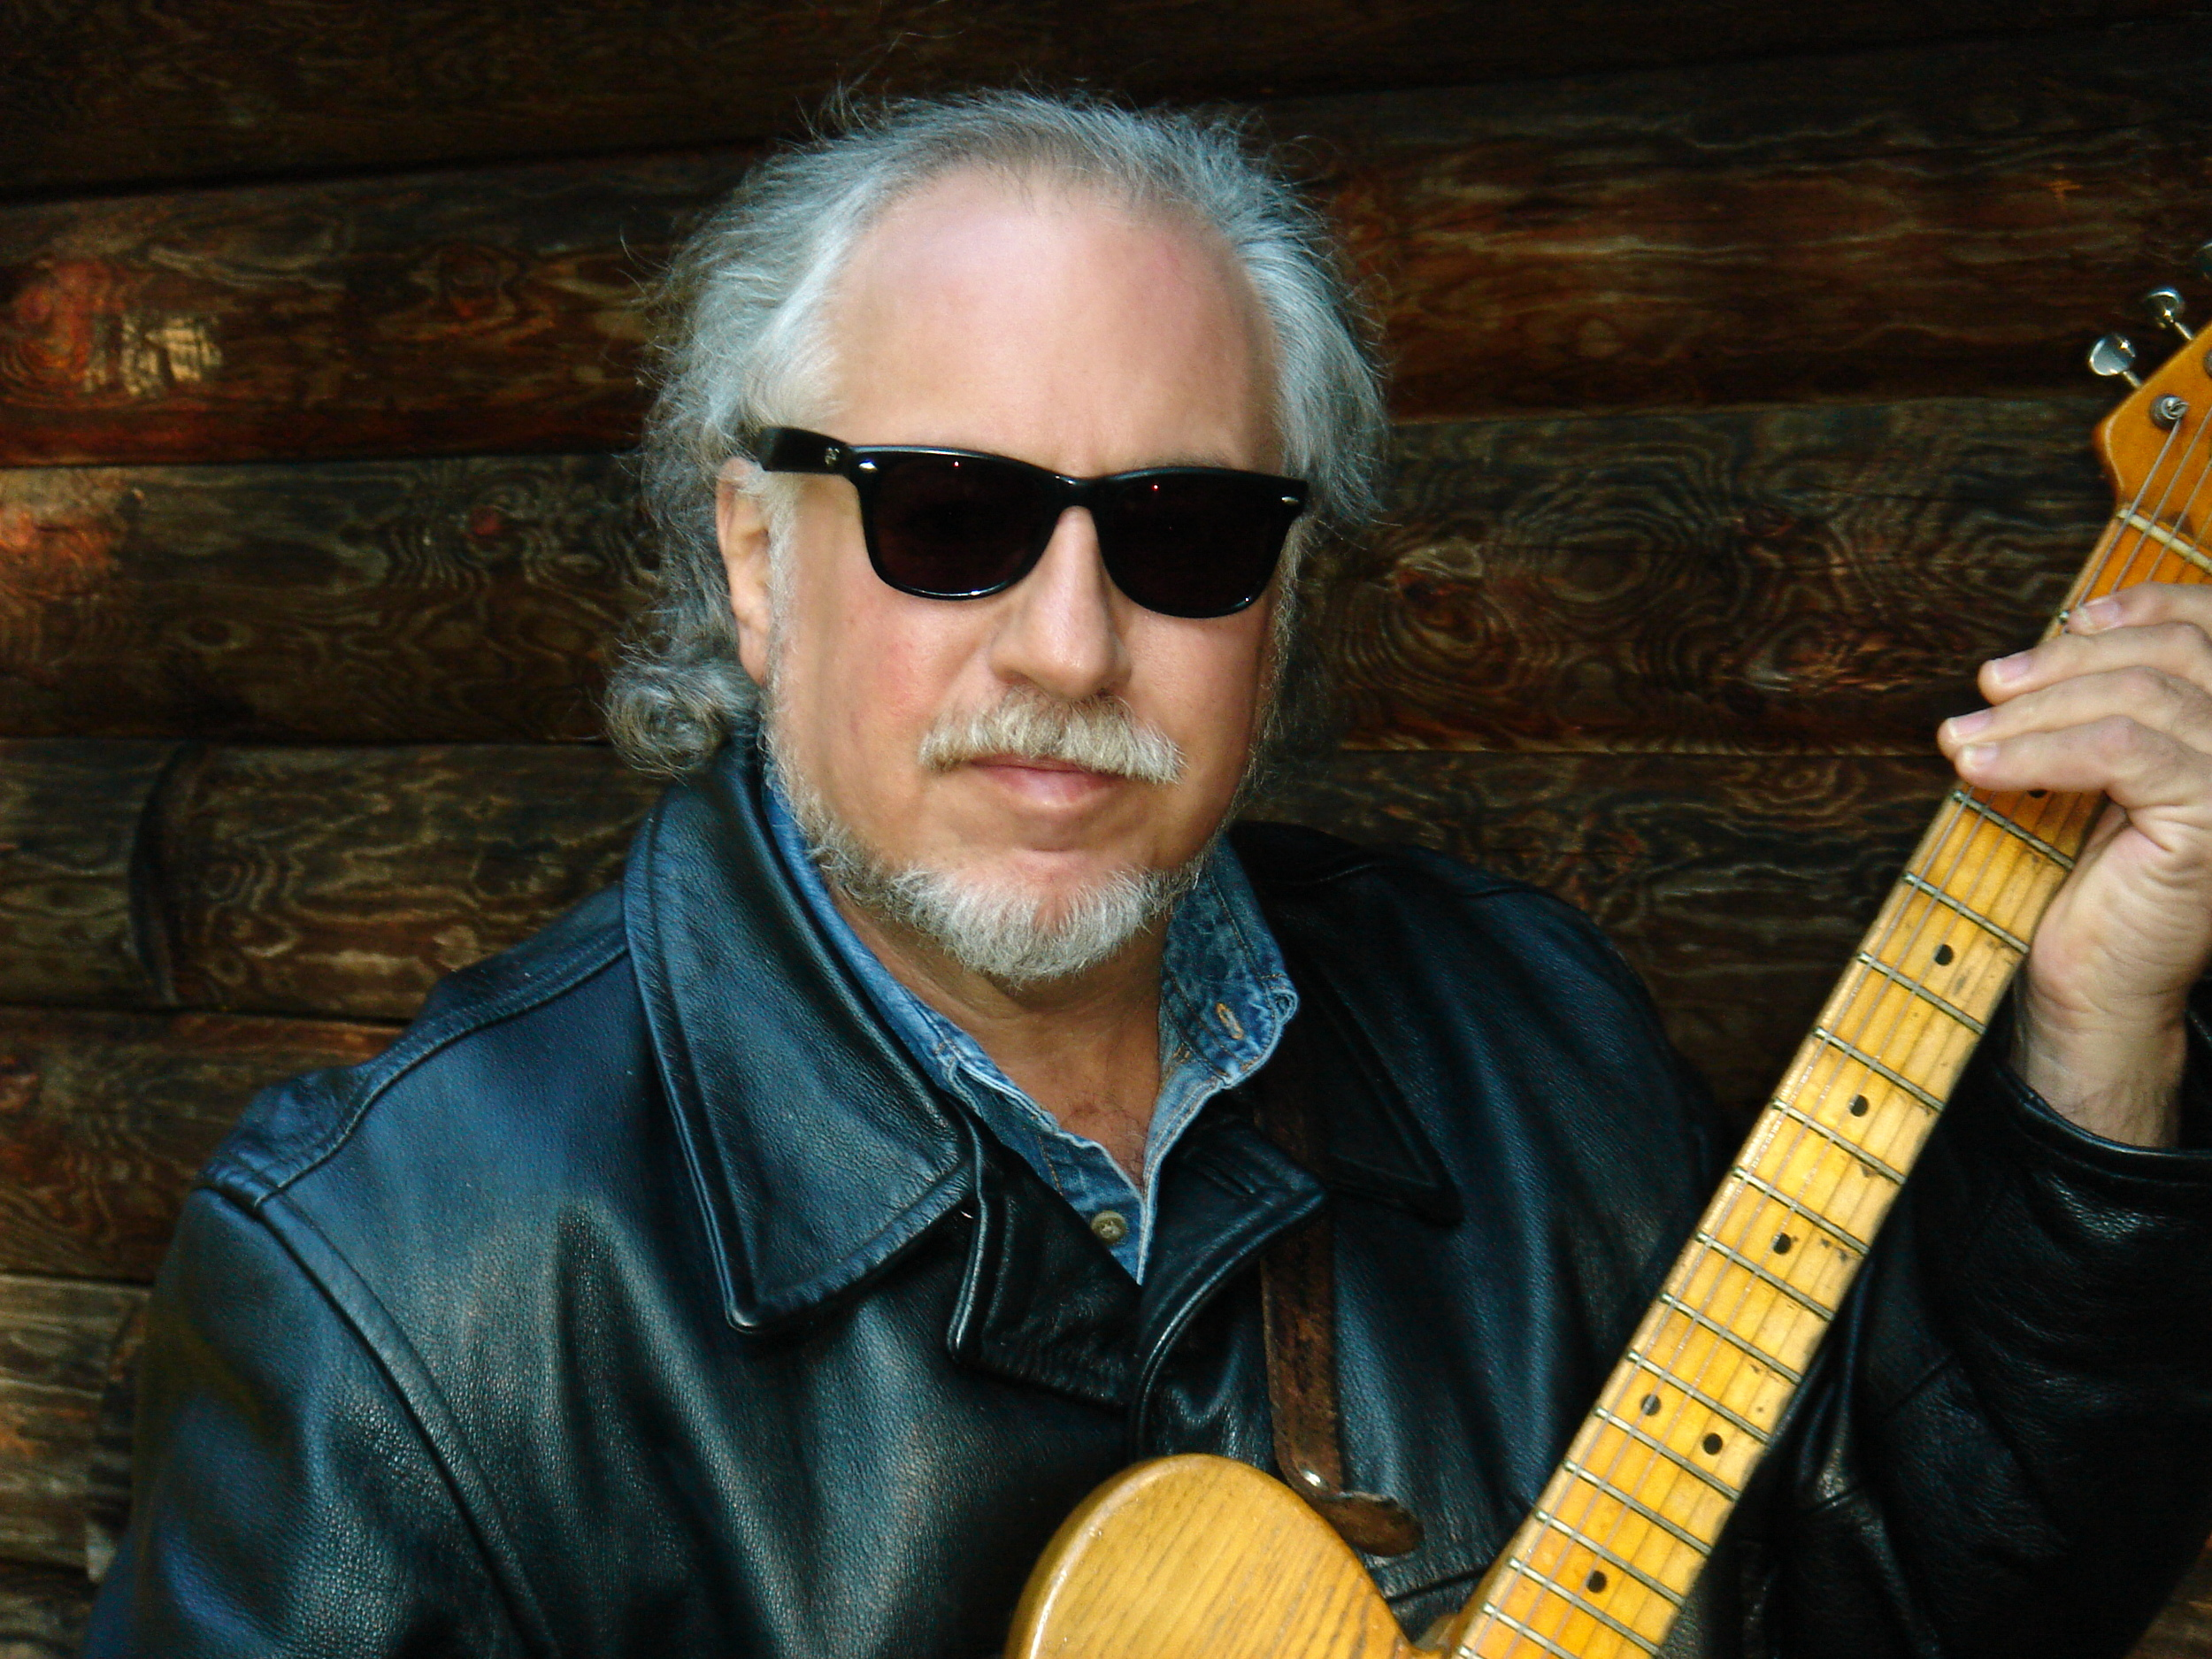 "<h2><font color=""#FFFFFF"">Steady Rollin' Bob Margolin</h2></font>"